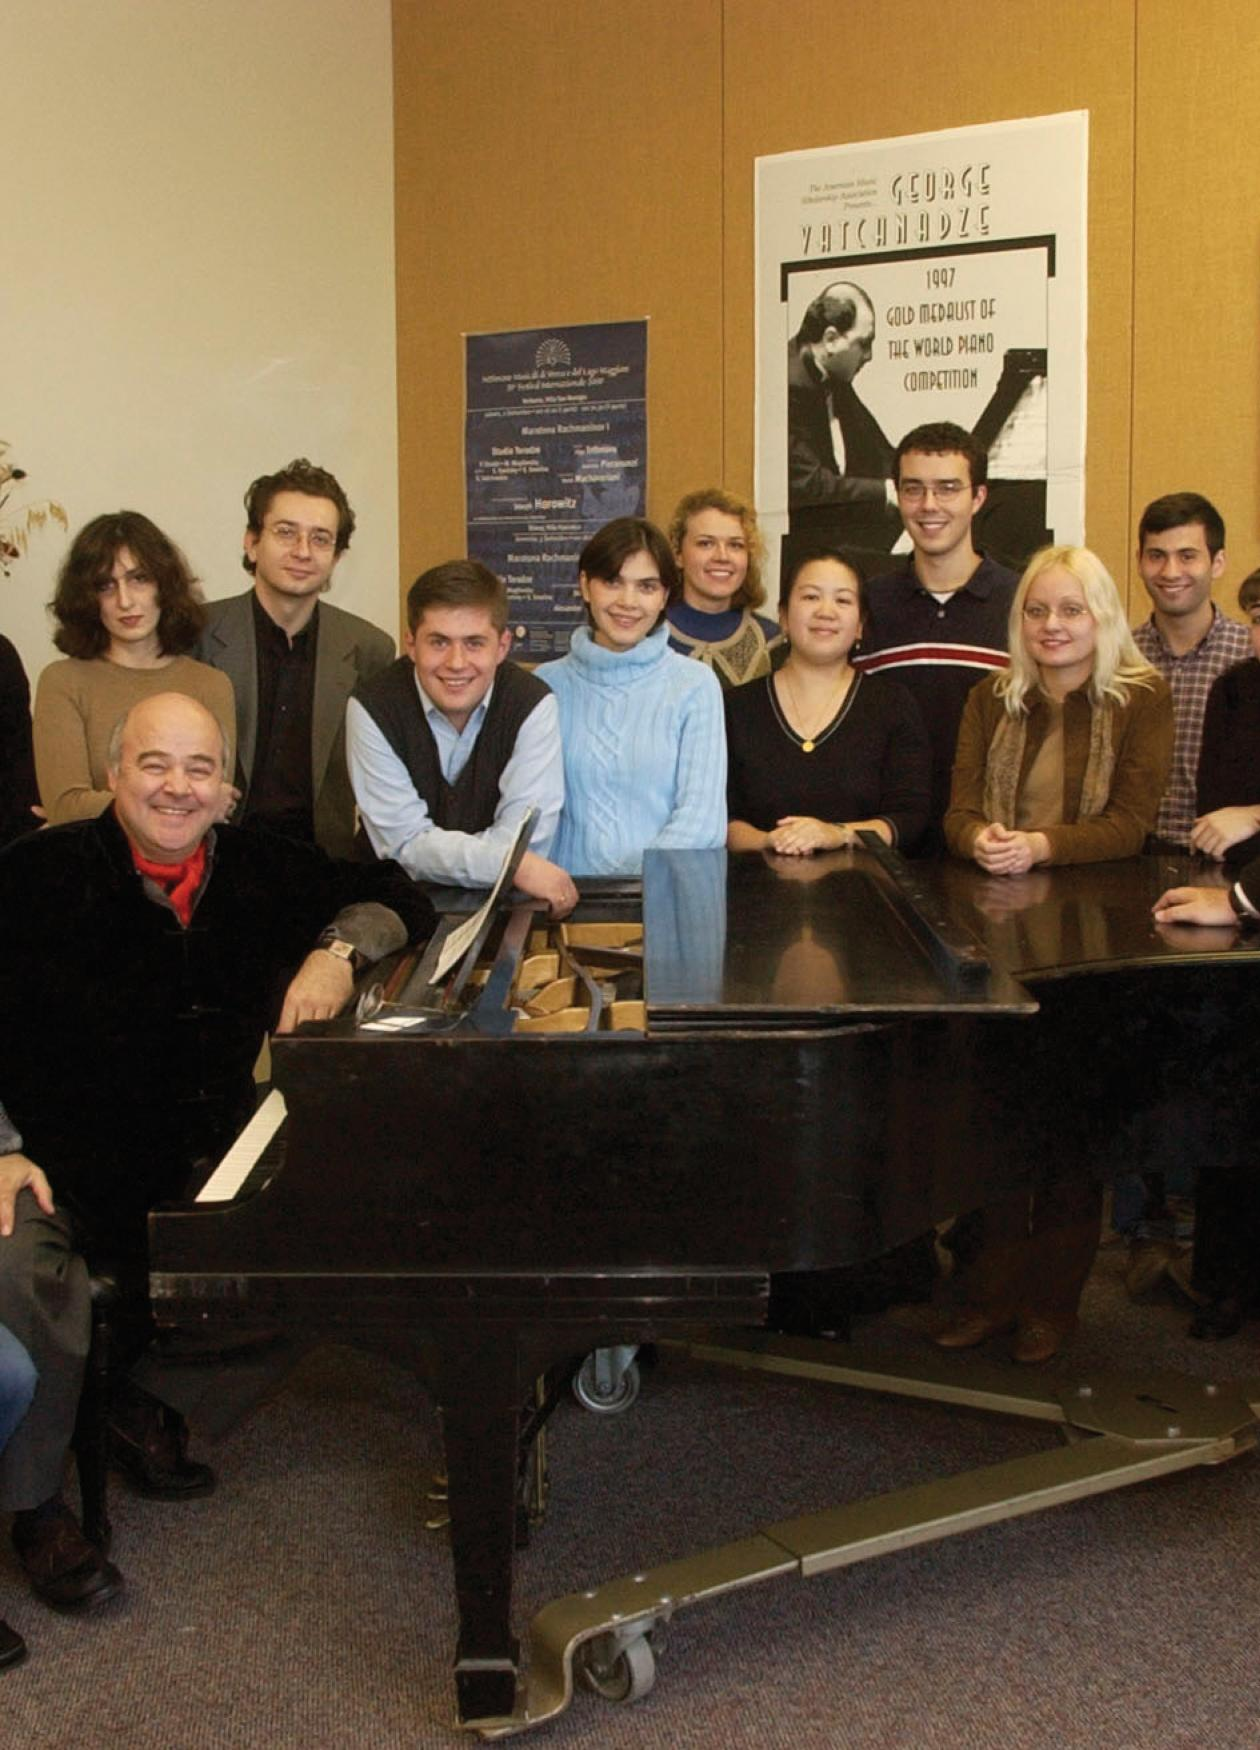 Group photo of musicians standing around a piano